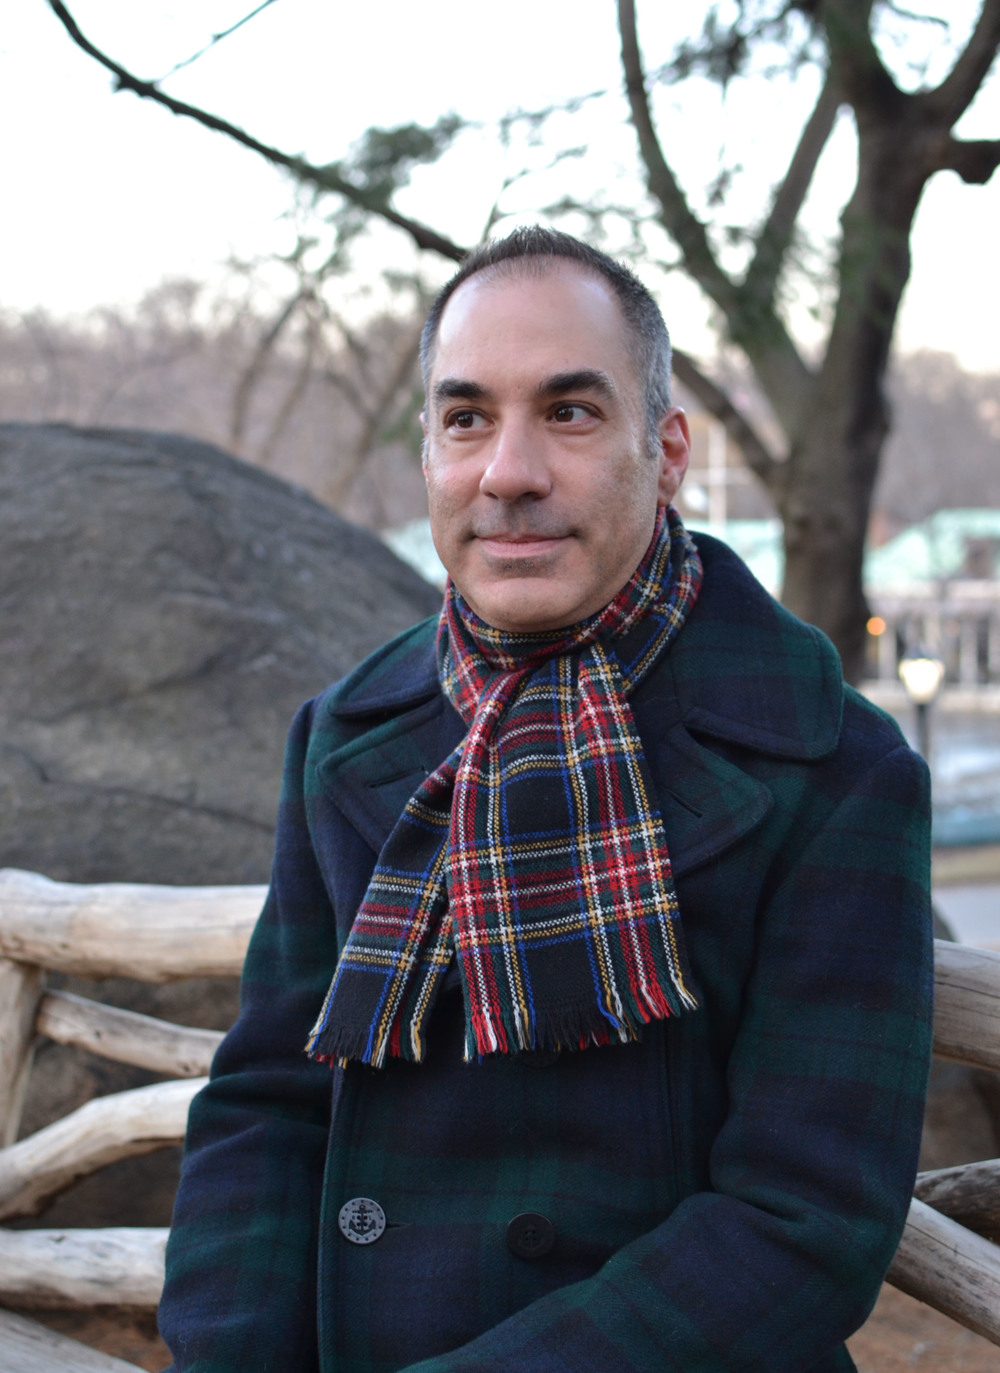 Me in Central Park - January 2014  Photo Credit -  Paul Weimer Design